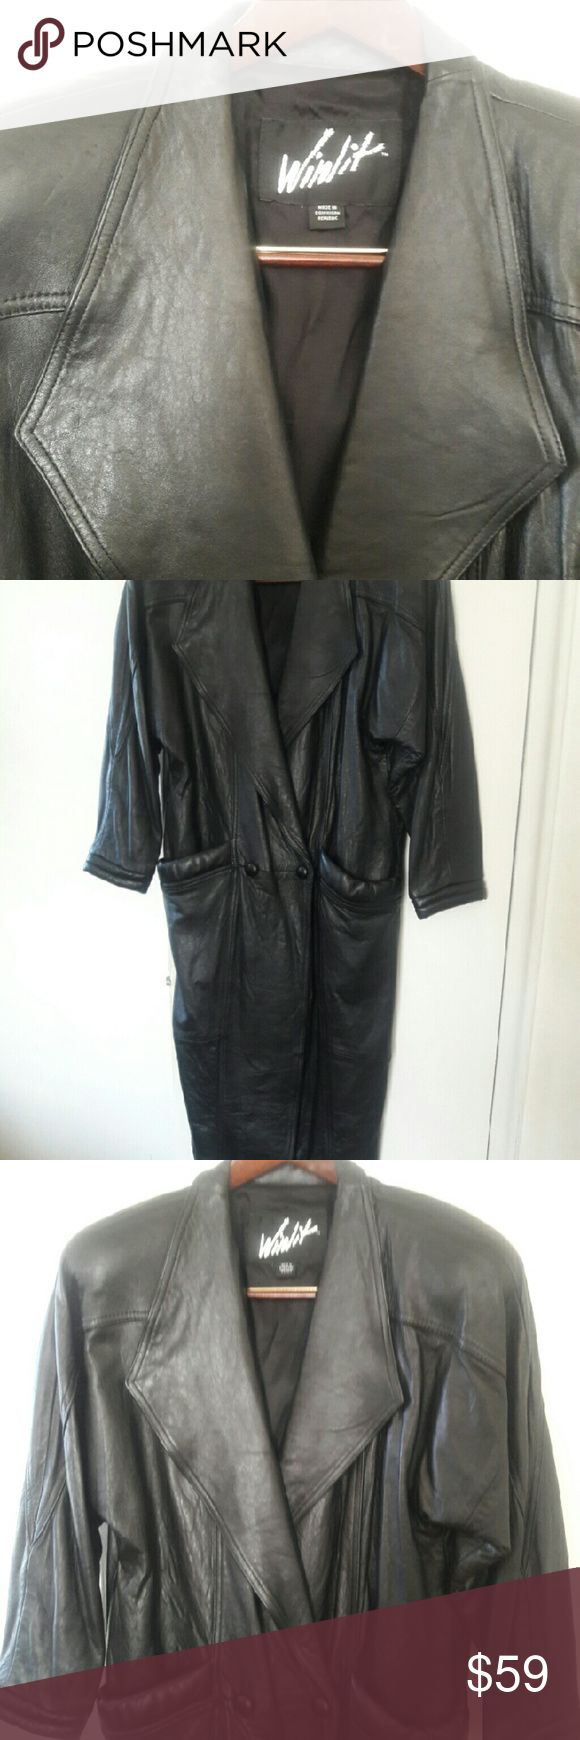 Full-length black woman's leather coat by Winlit. Great condition,  like new. Authentic Original Vintage Style Jackets & Coats